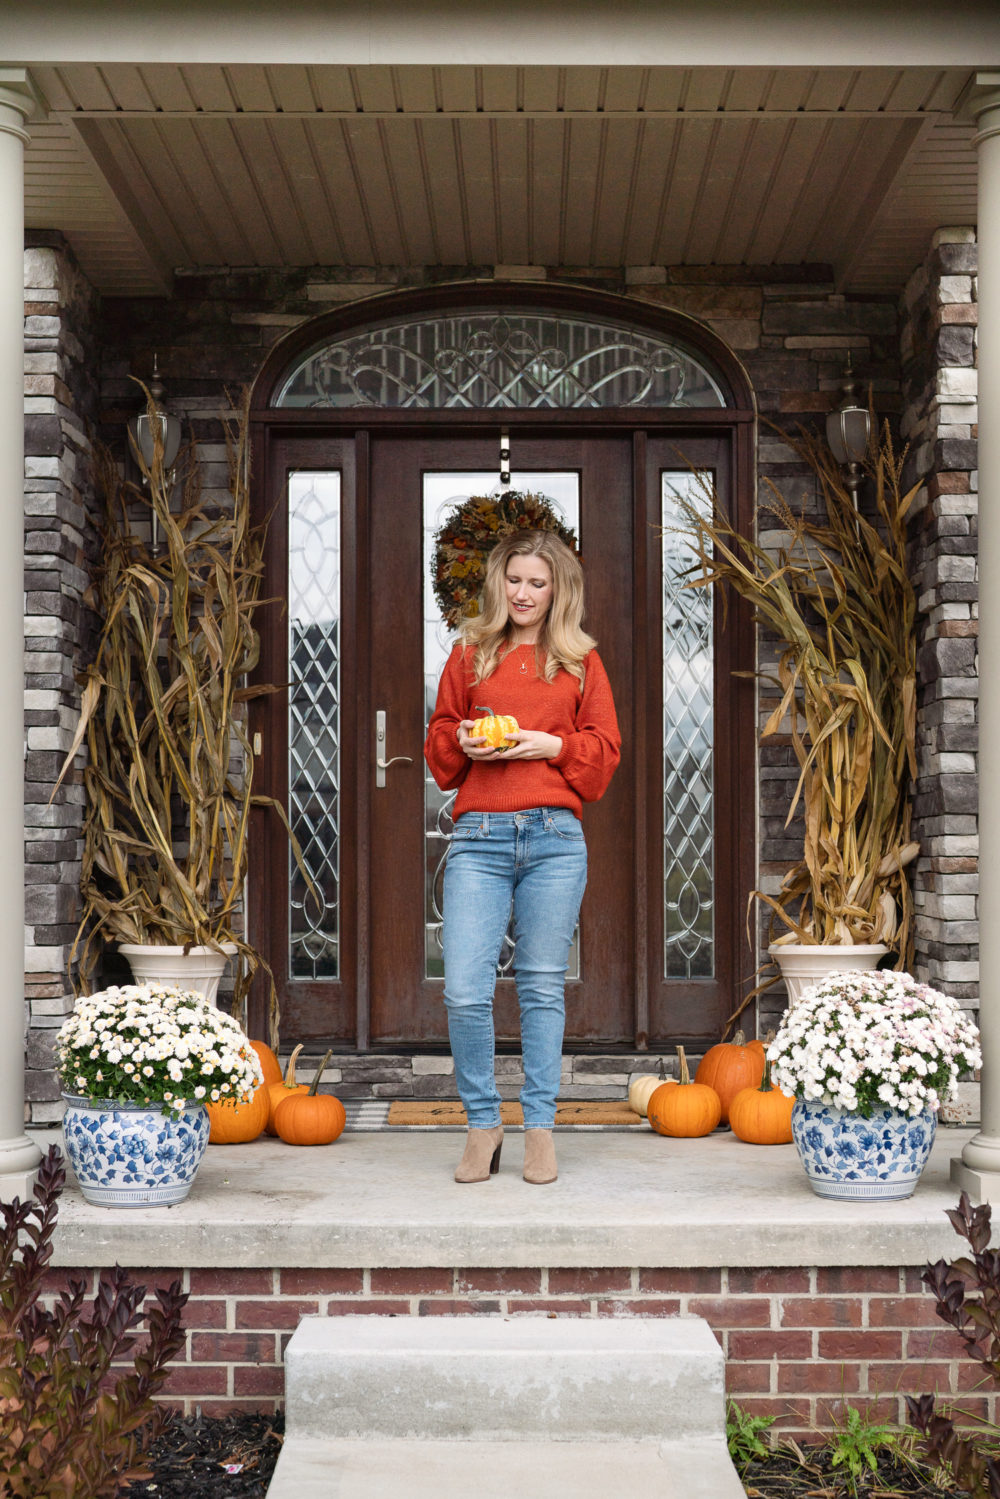 Petite Fashion Blog | Fall Home Decor | Fall Front Porch Inspiration